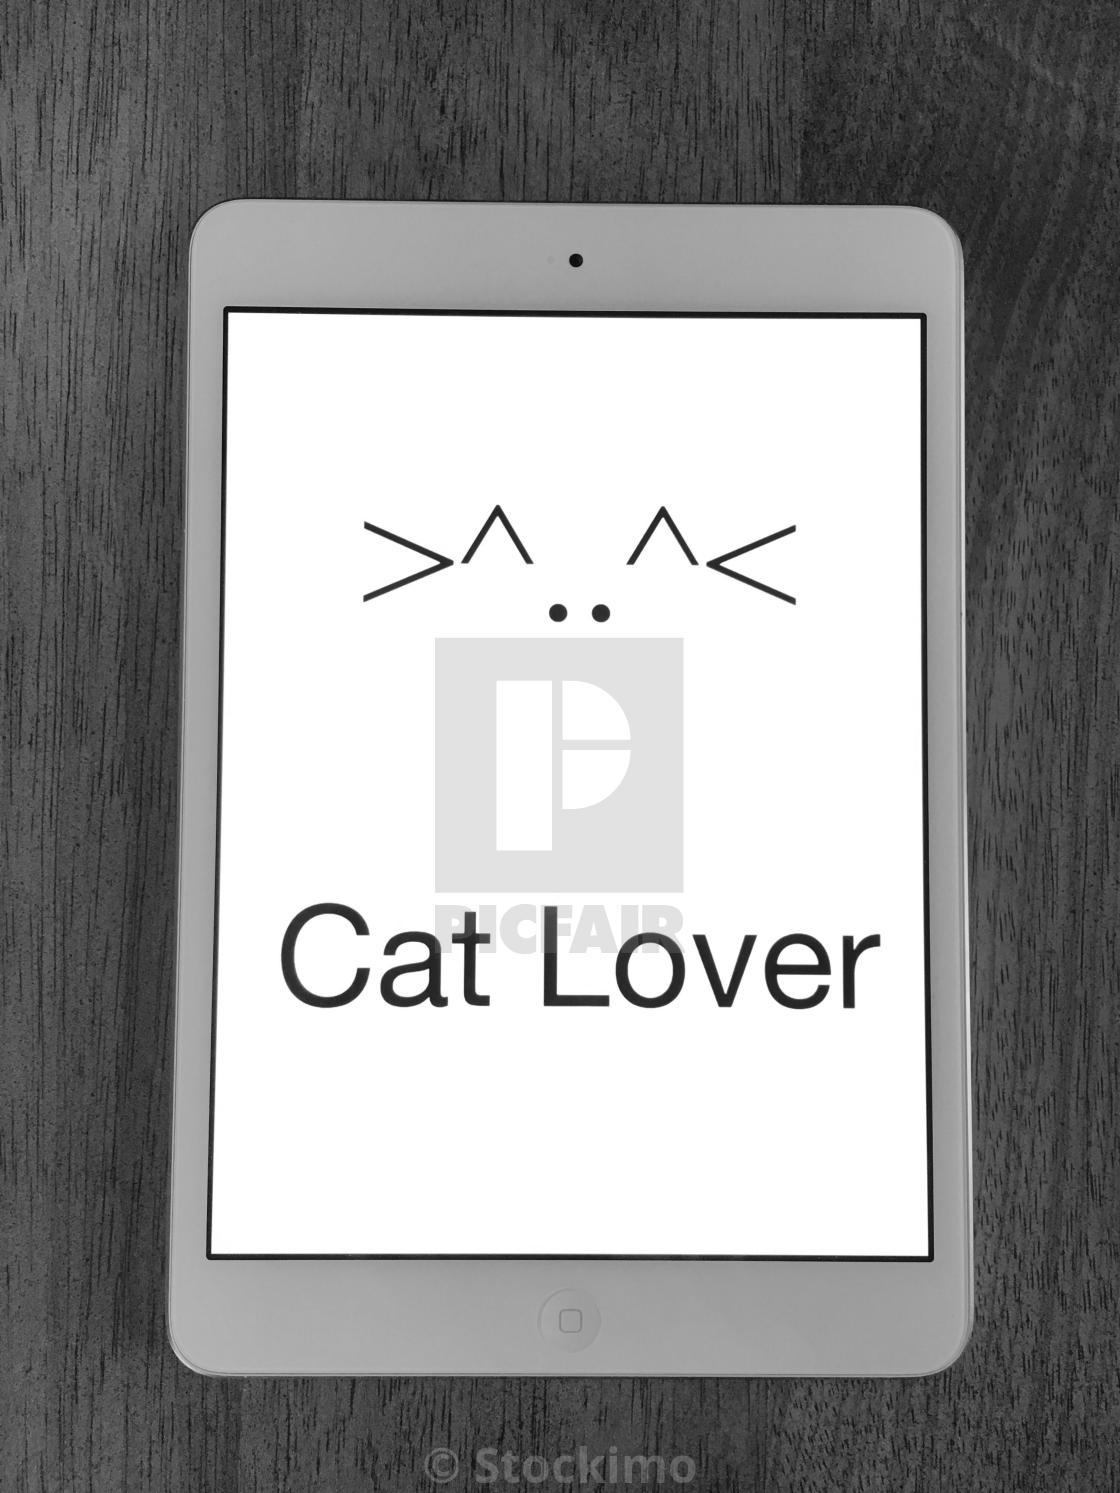 Keyboard Symbols Form A Cat With Ears And Whiskers License For